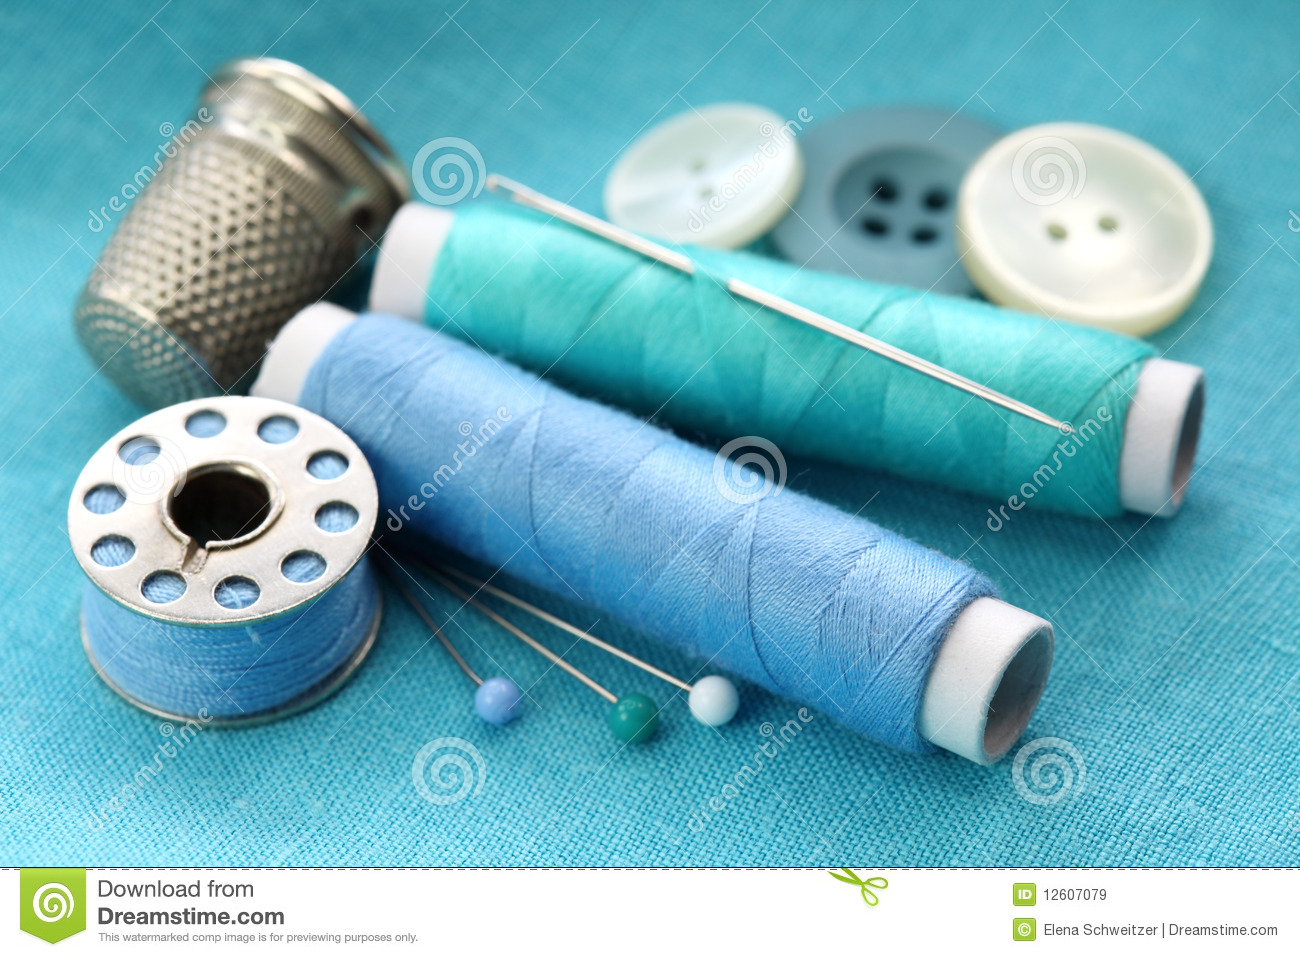 Sewing Stuff Royalty Free Stock Images - Image: 12607079